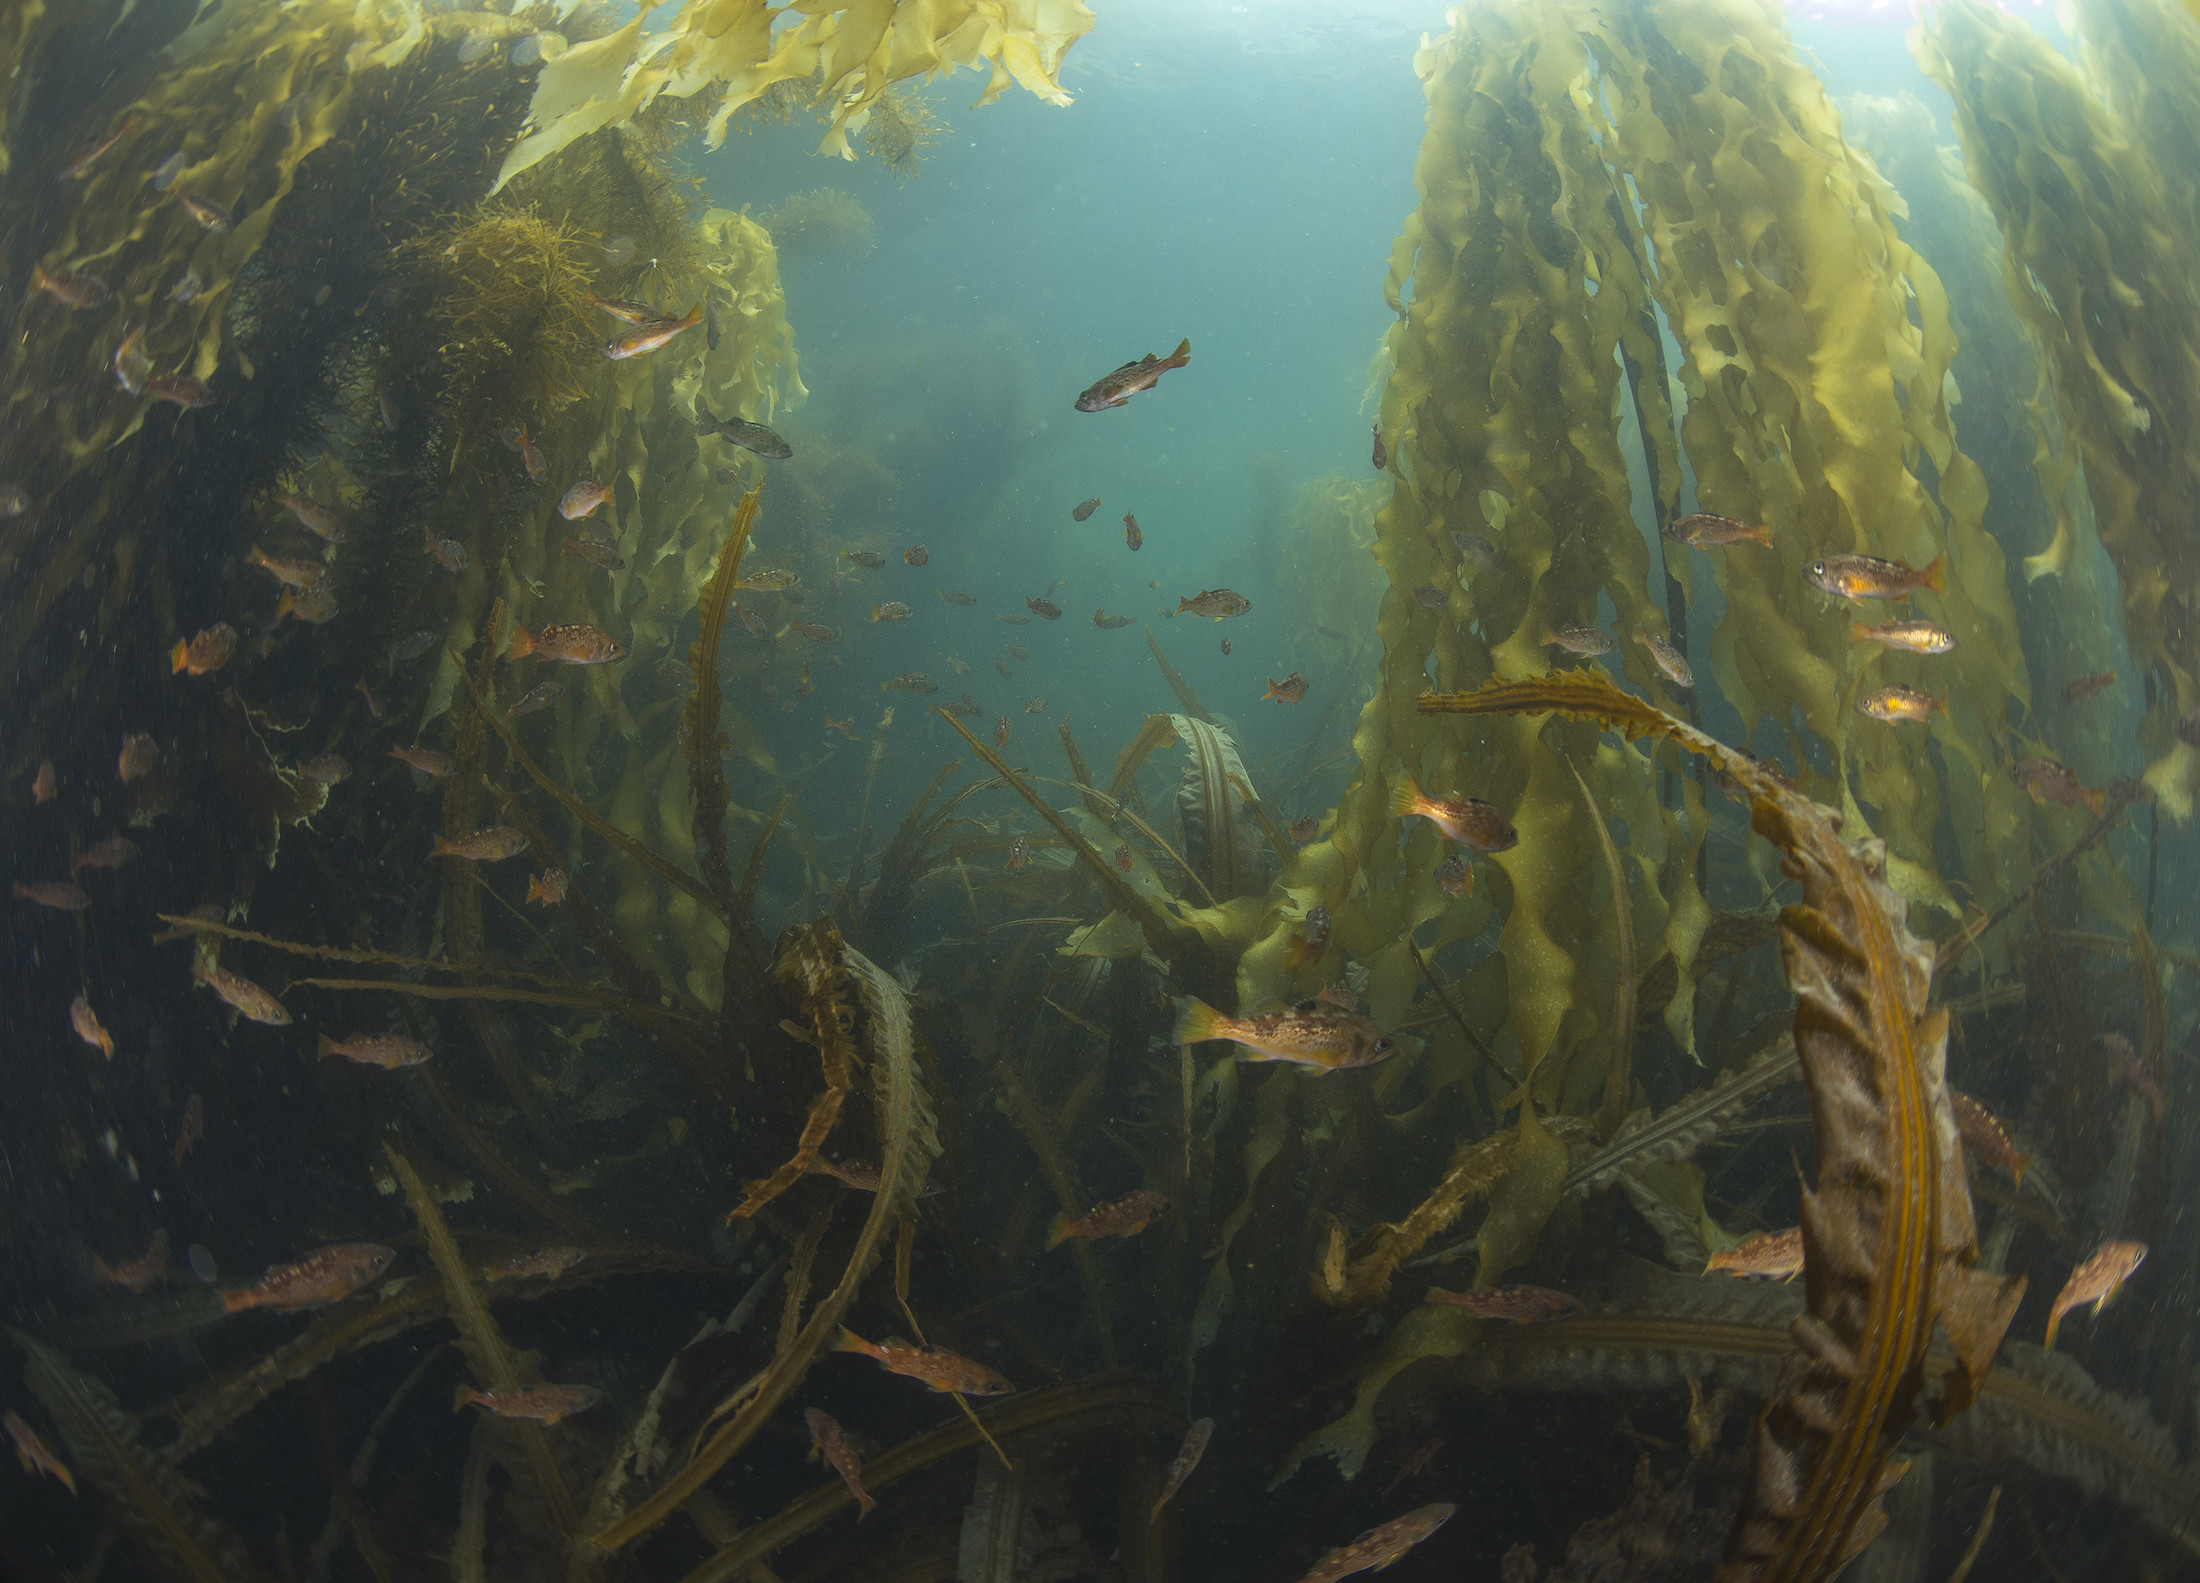 Two species of canopy kelp that have especially benefited from urchin removal include bull kelp and giant kelp, and many species of understory (shorter) kelp are benefitting as well. Photo: Ryan Miller